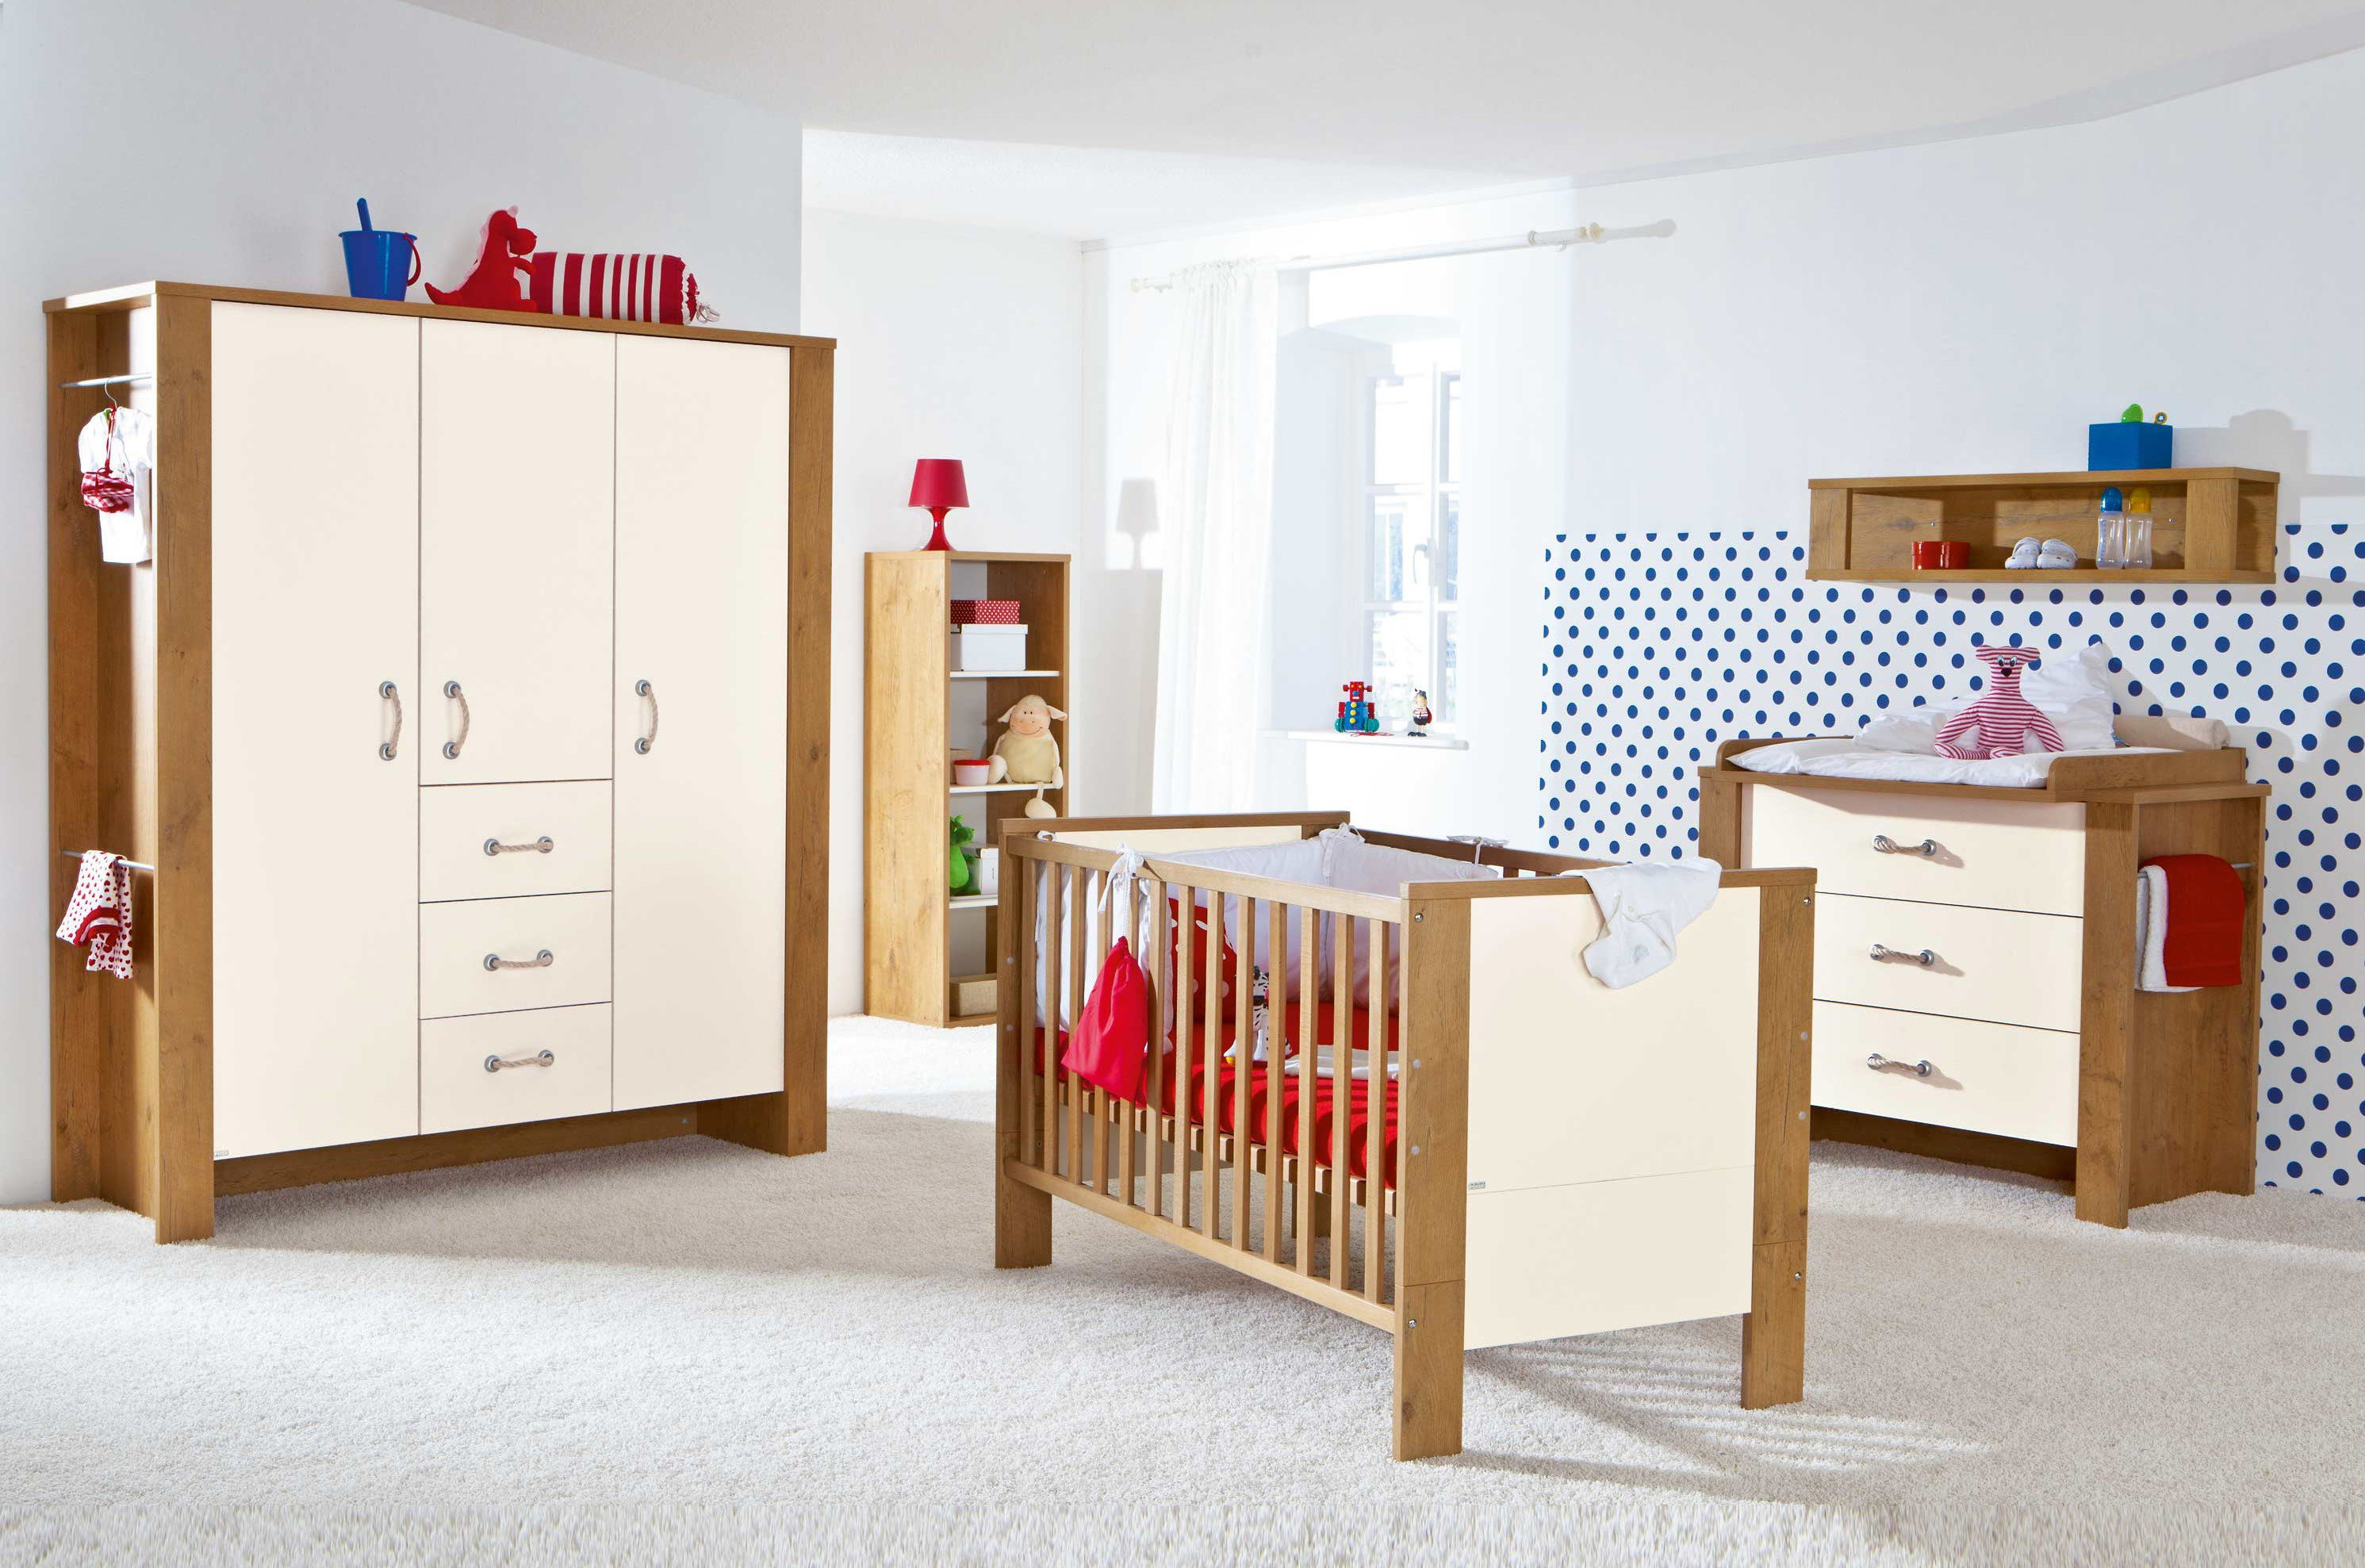 paidi babyzimmer henrik eiche m bel letz ihr online shop. Black Bedroom Furniture Sets. Home Design Ideas